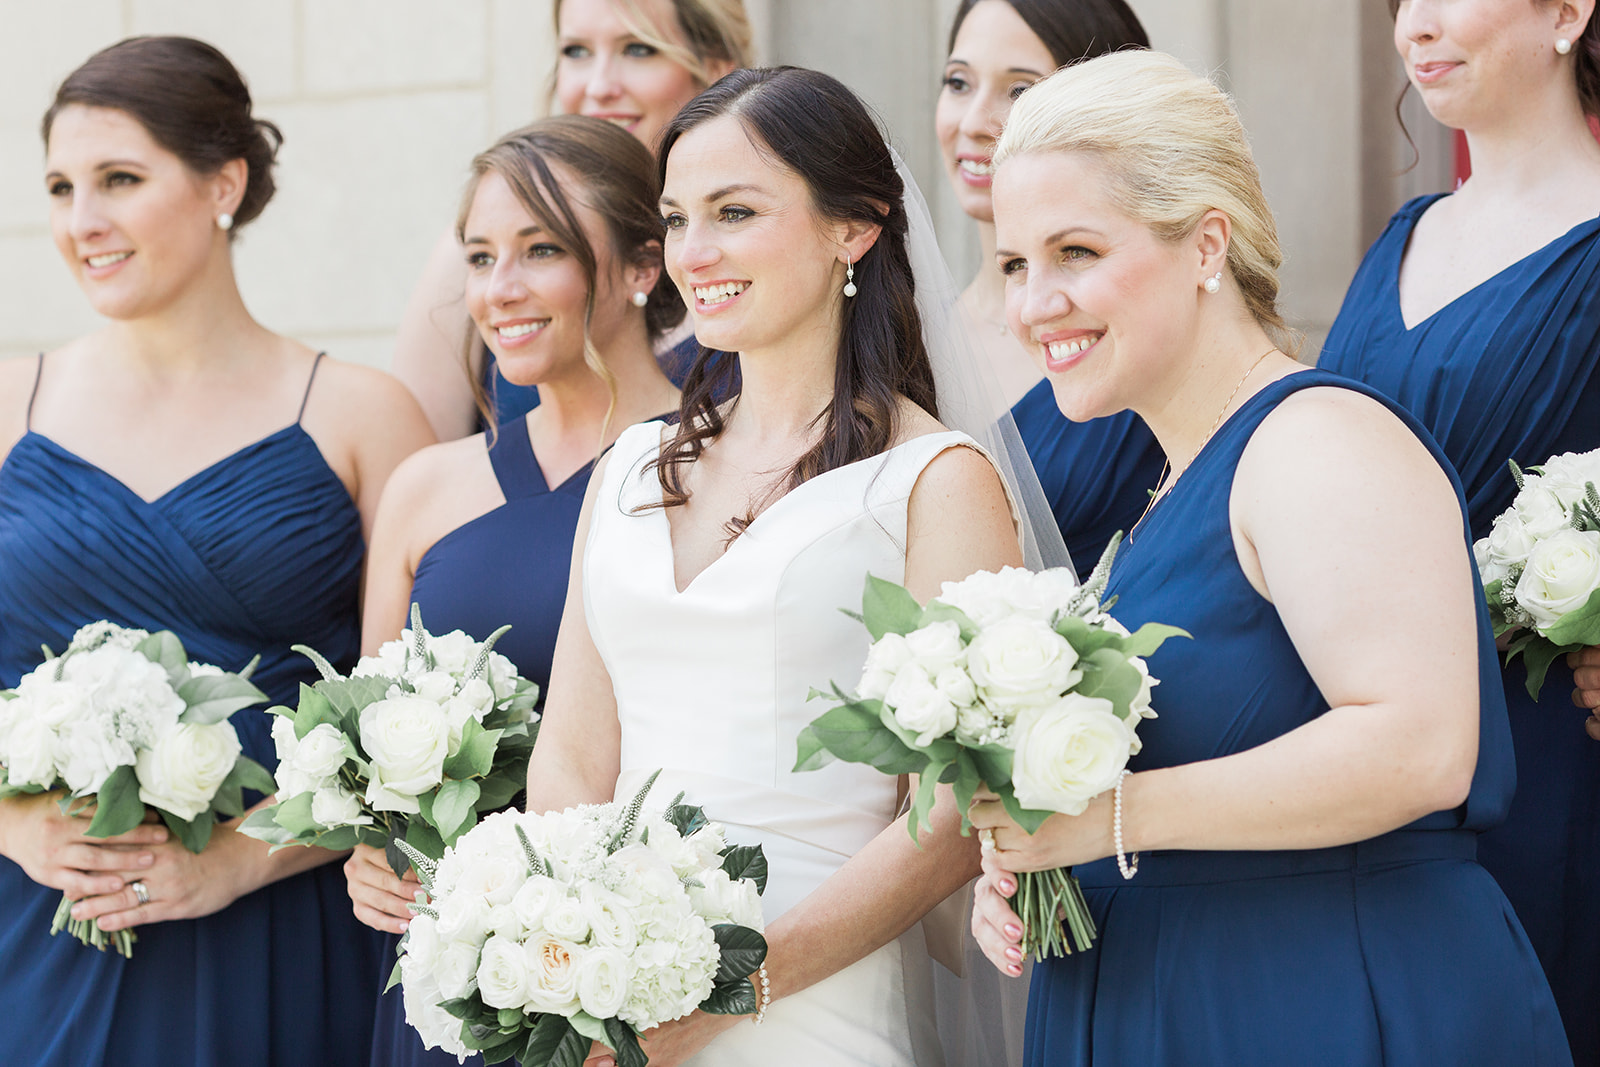 Bride with bridesmaids with blue dresses and white wedding bouquets pose for Pittsburgh wedding at PNC Park planned by Exhale Events. Find more wedding inspiration at exhale-events.com!